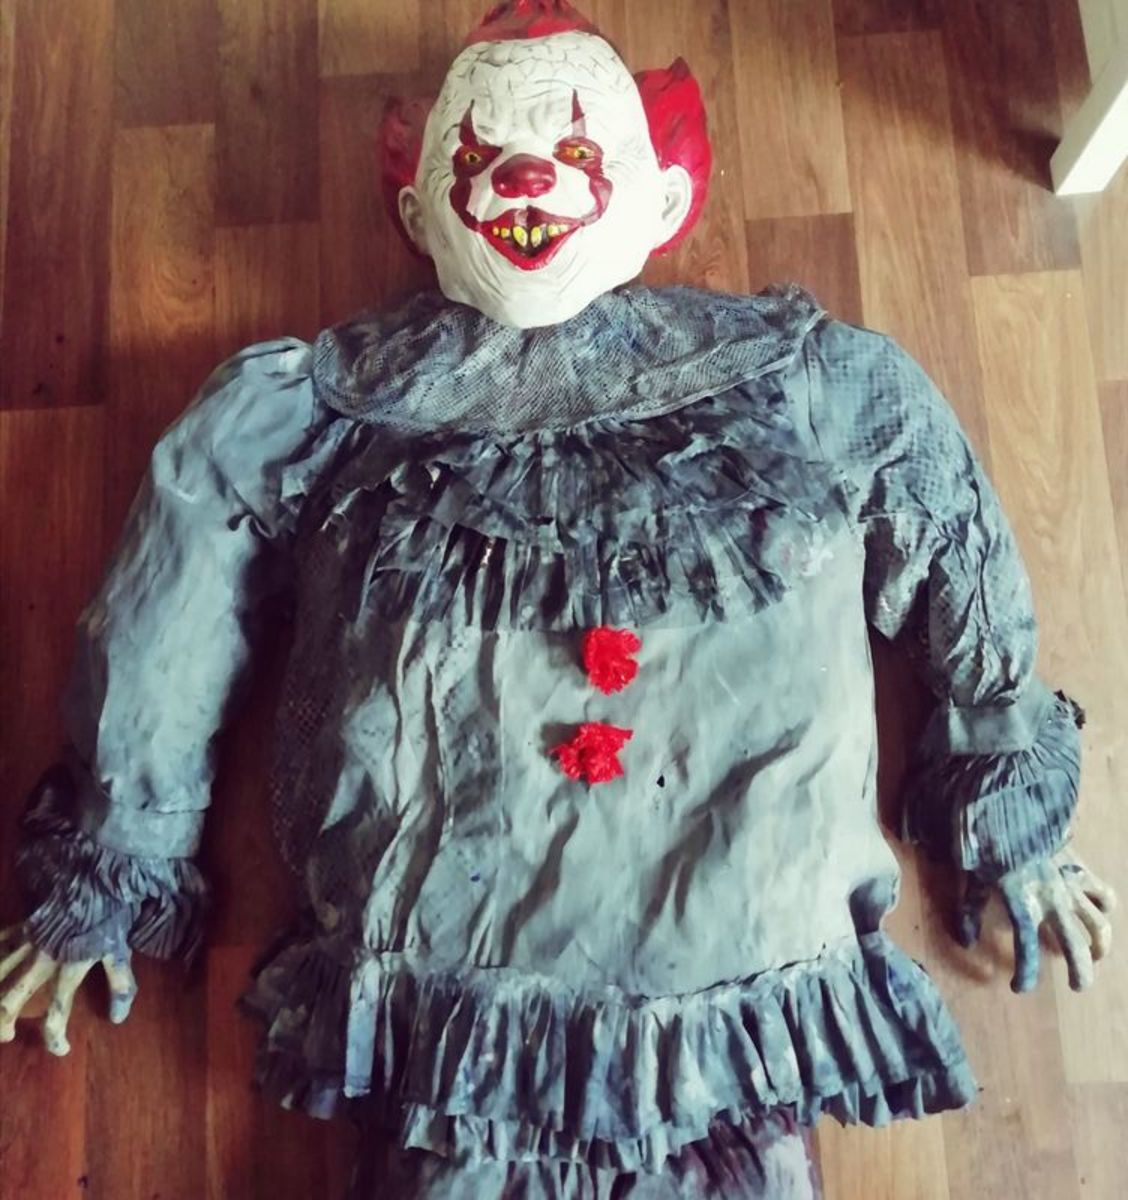 How To Make Pennywise The Clown From It For Halloween Holidappy Celebrations